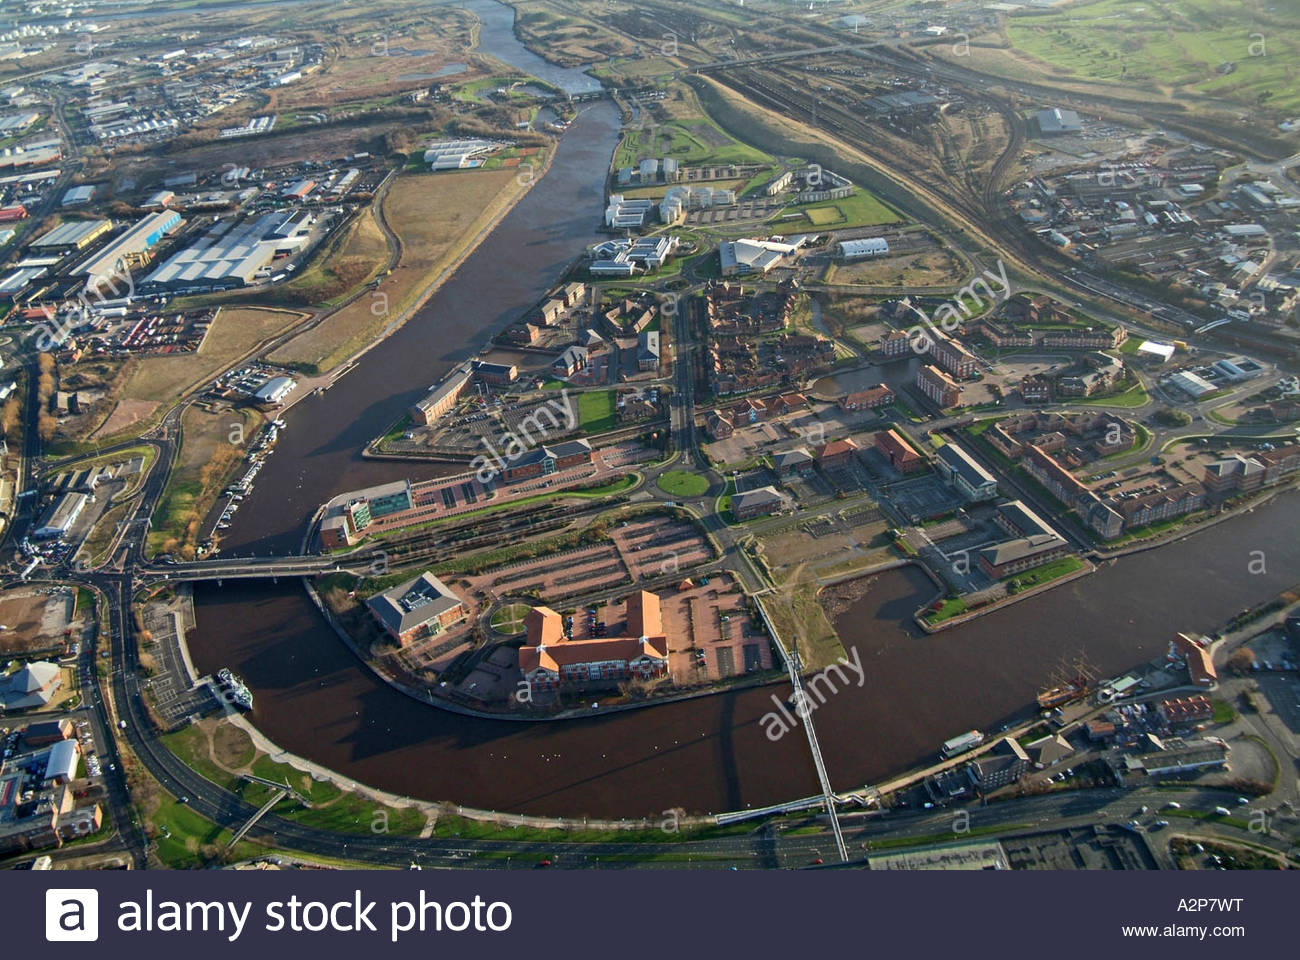 Regeneration area of Stockton upon Tees, North East England, showing river Tees and Millenium bridge - January 2007 - Stock Image